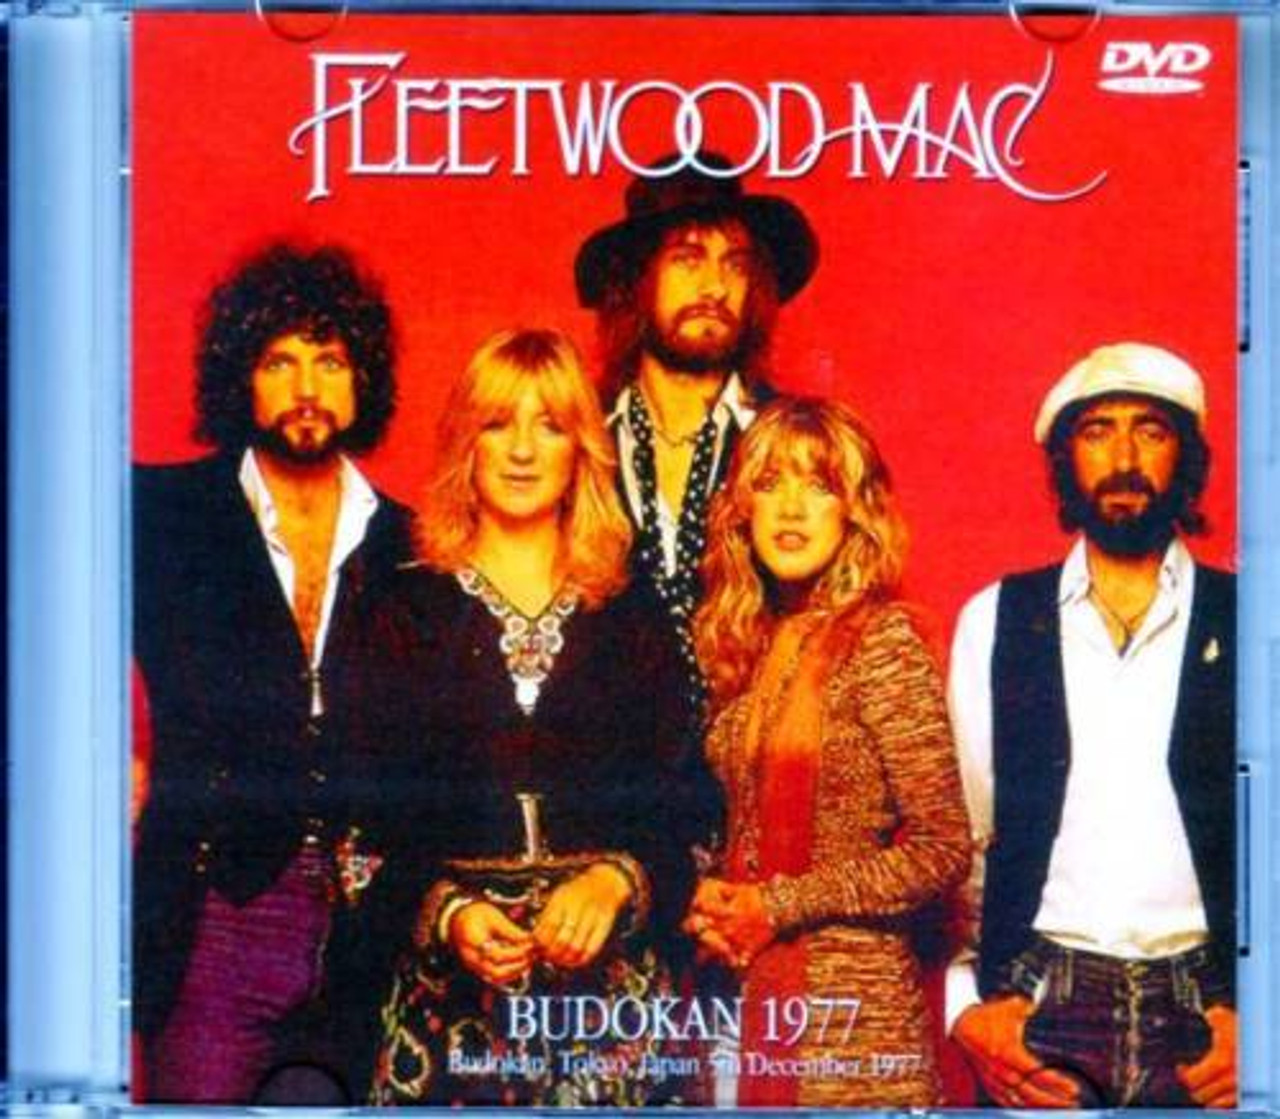 Fleetwood Mac - Live at the Budokan Tokyo, Japan 1977 DVD - Concertdiscs